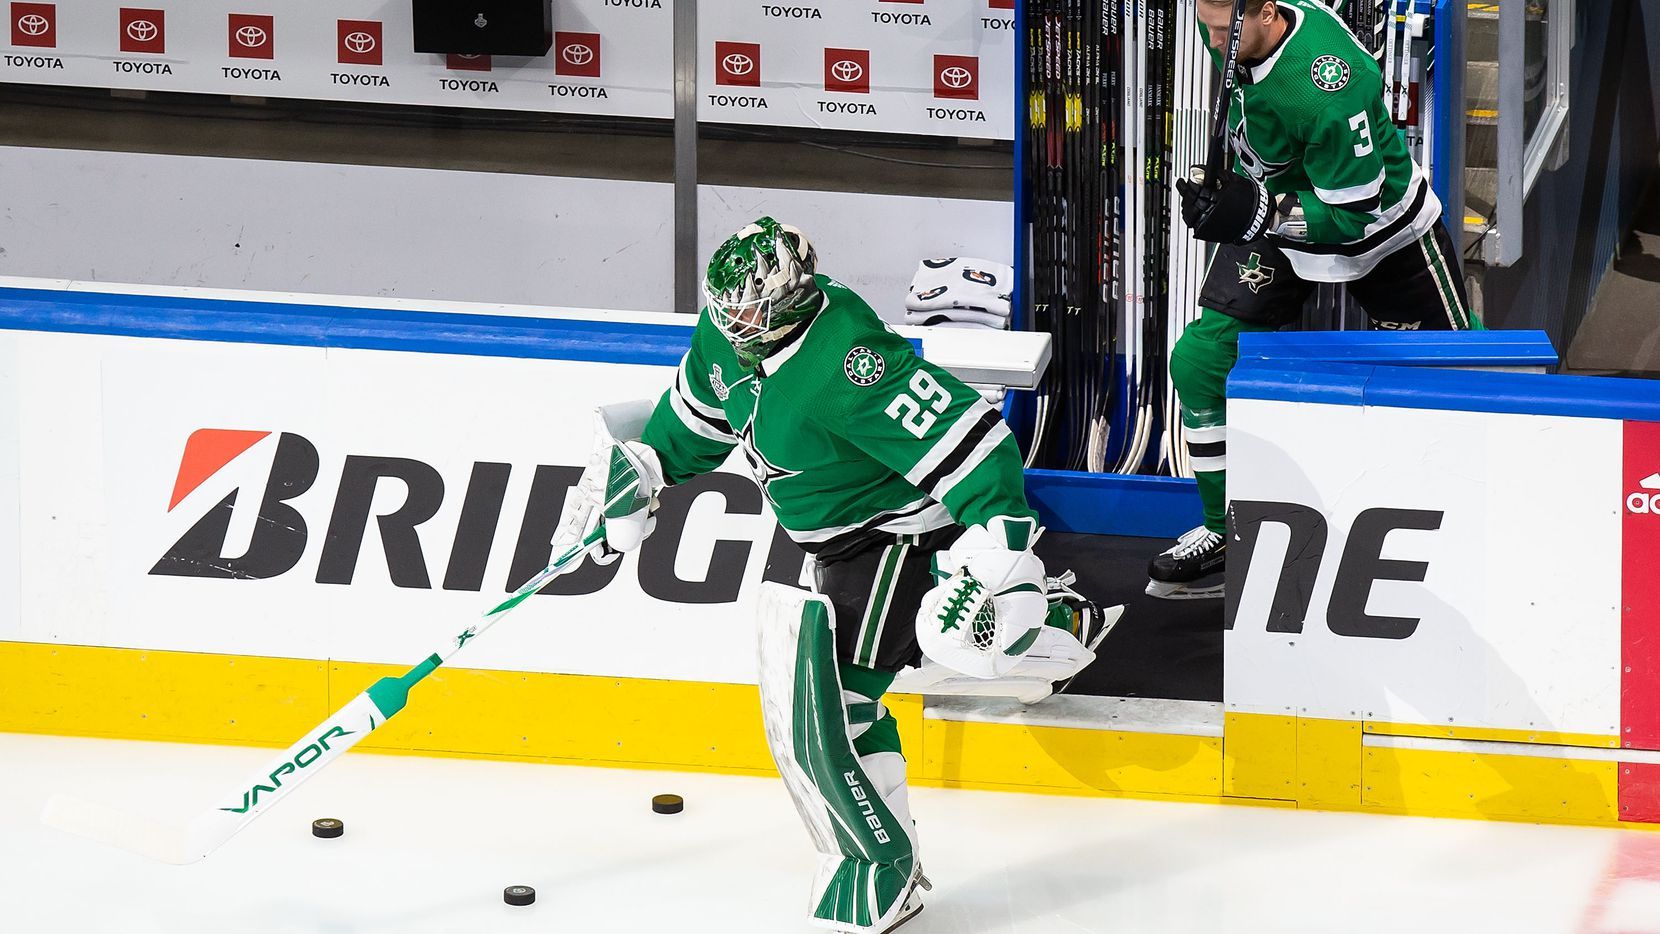 FILE - Stars goaltender Jake Oettinger (29) warms up during Game 4 of the Stanley Cup Final against the Lightning at Rogers Place in Edmonton, Alberta, Canada, on Friday, Sept. 25, 2020.